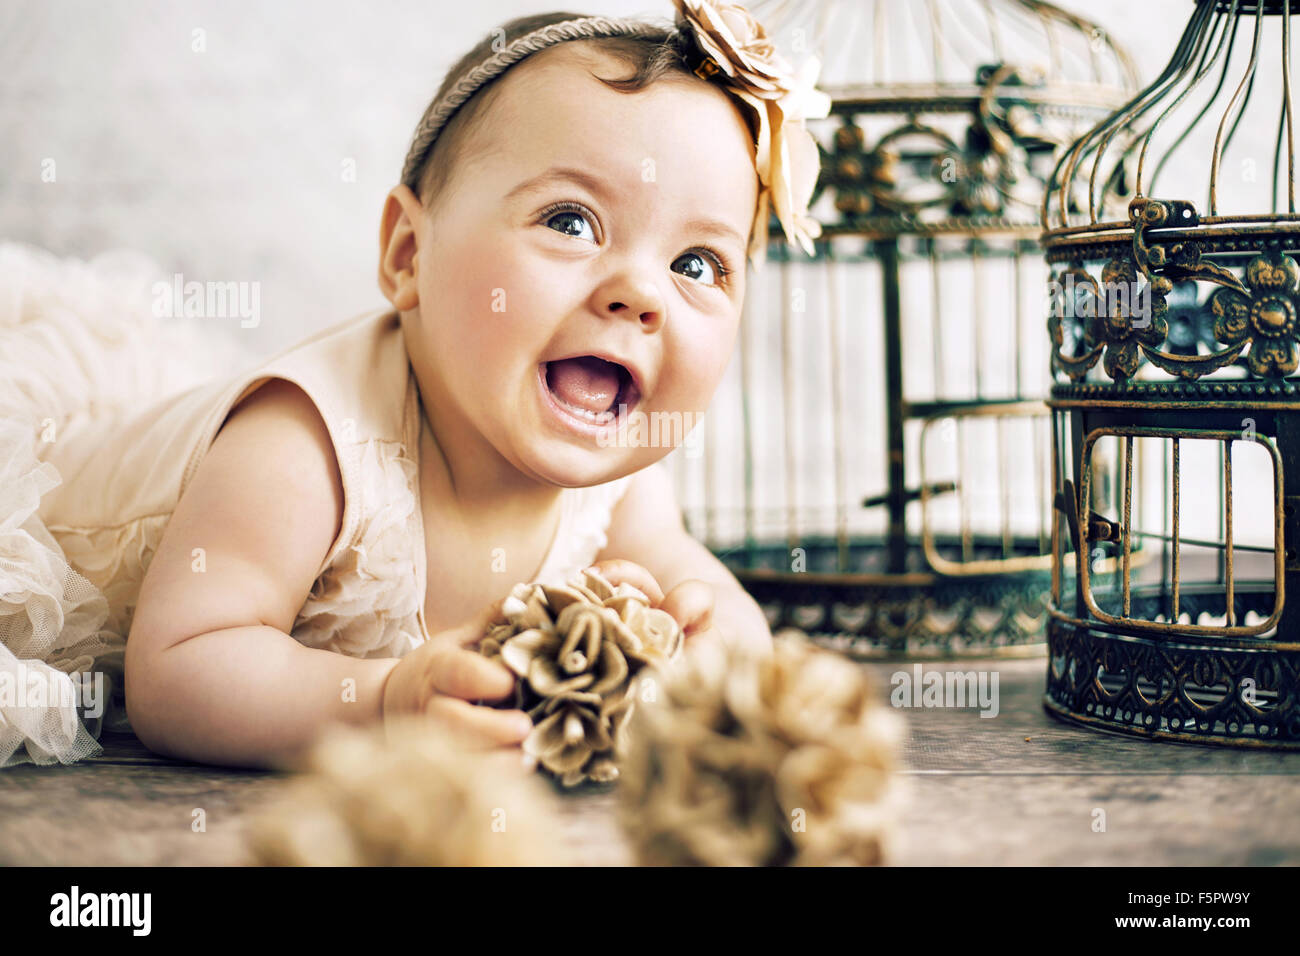 Closeup portrait of the cute baby - Stock Image